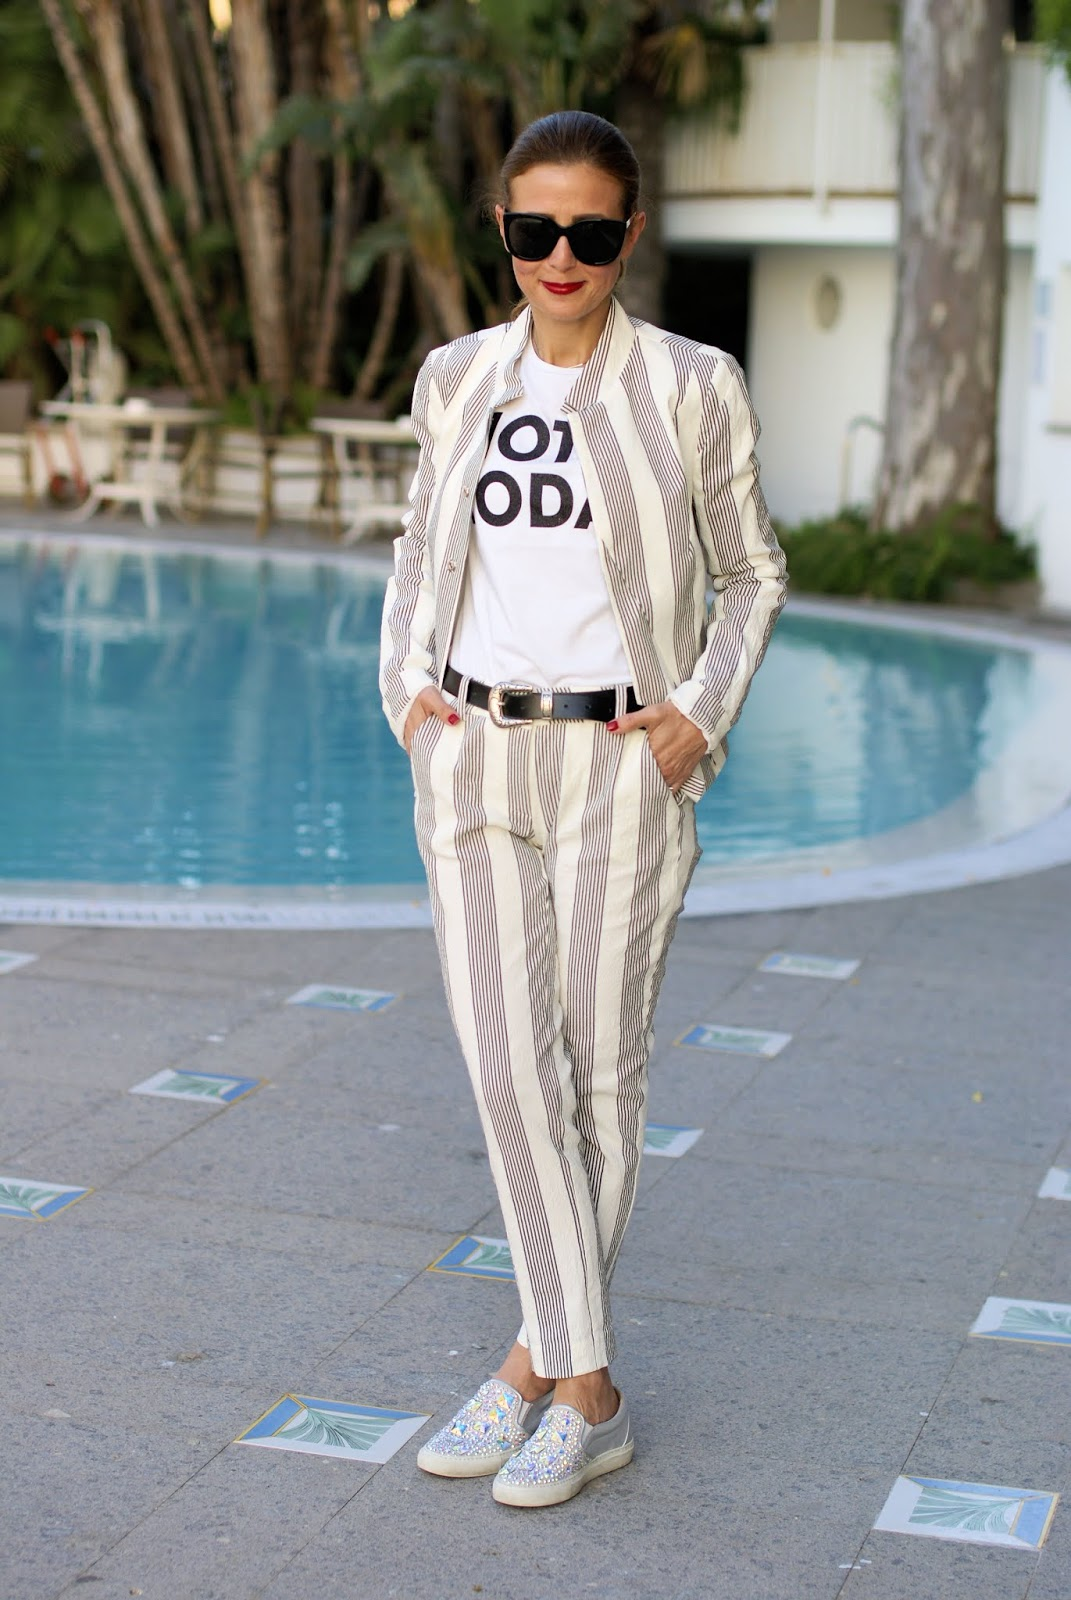 Not today: black and white striped suit on Fashion and Cookies fashion blog, fashion blogger style